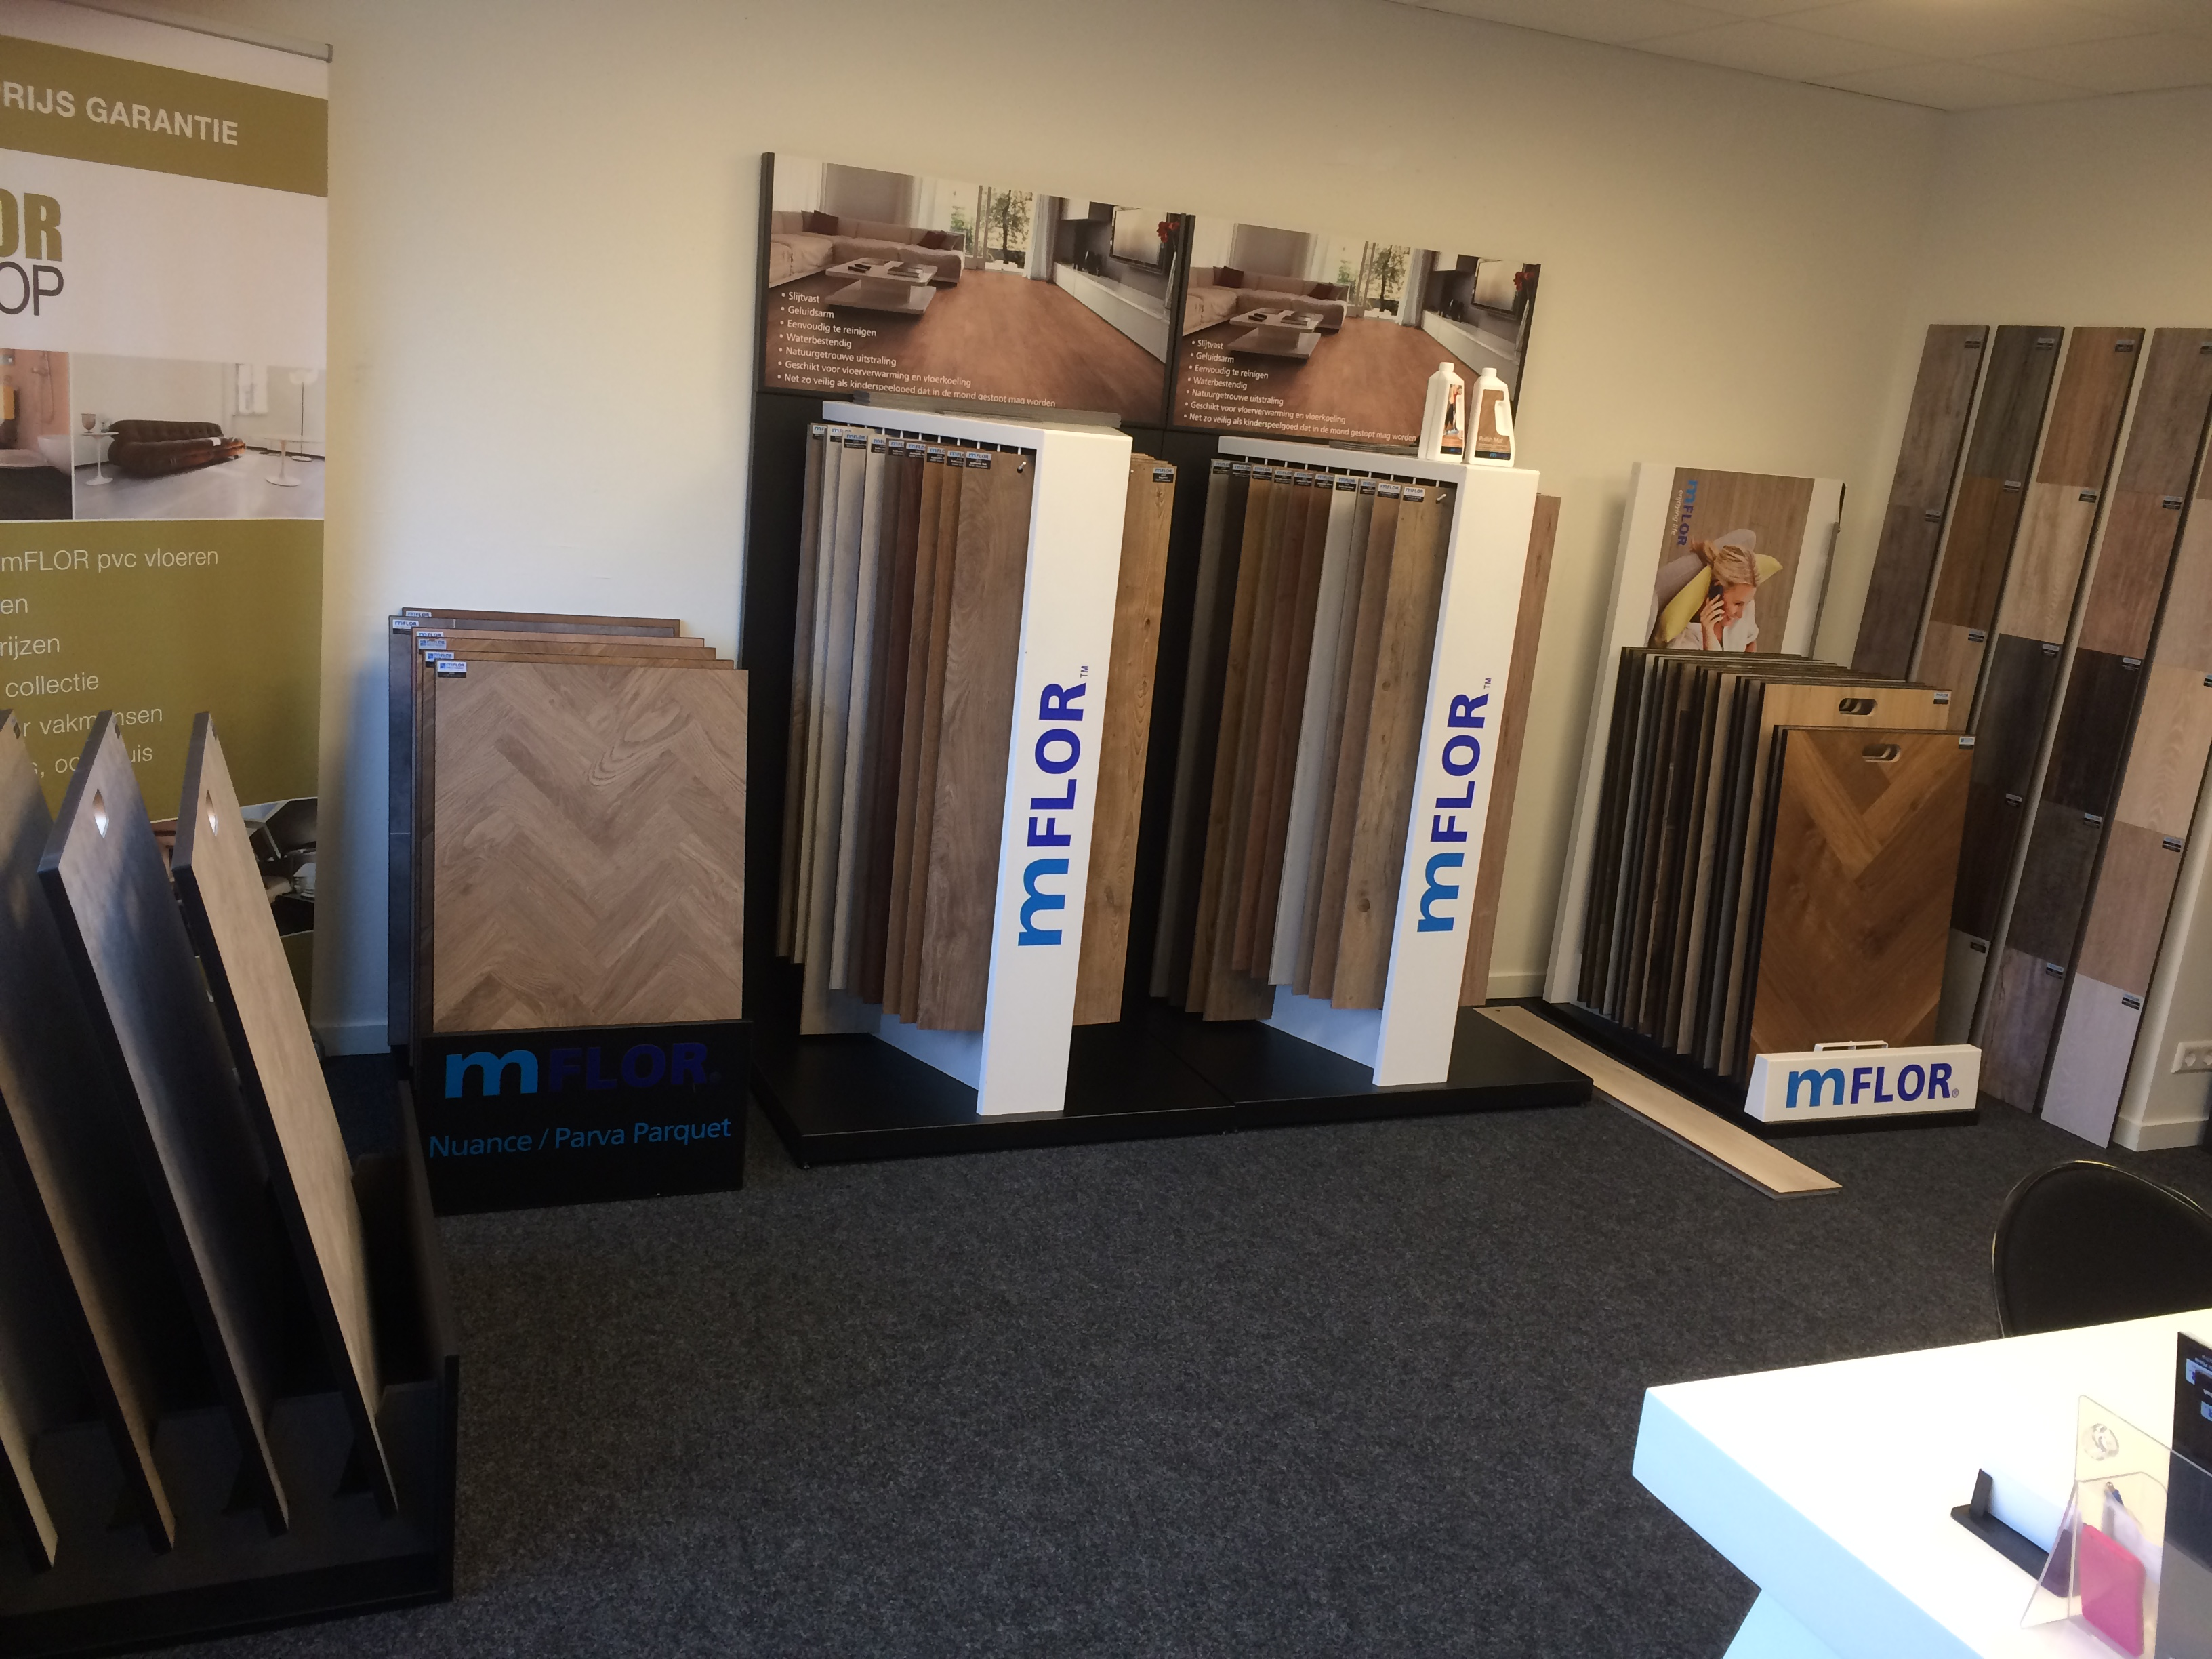 showroom pvc vloeren in weesp